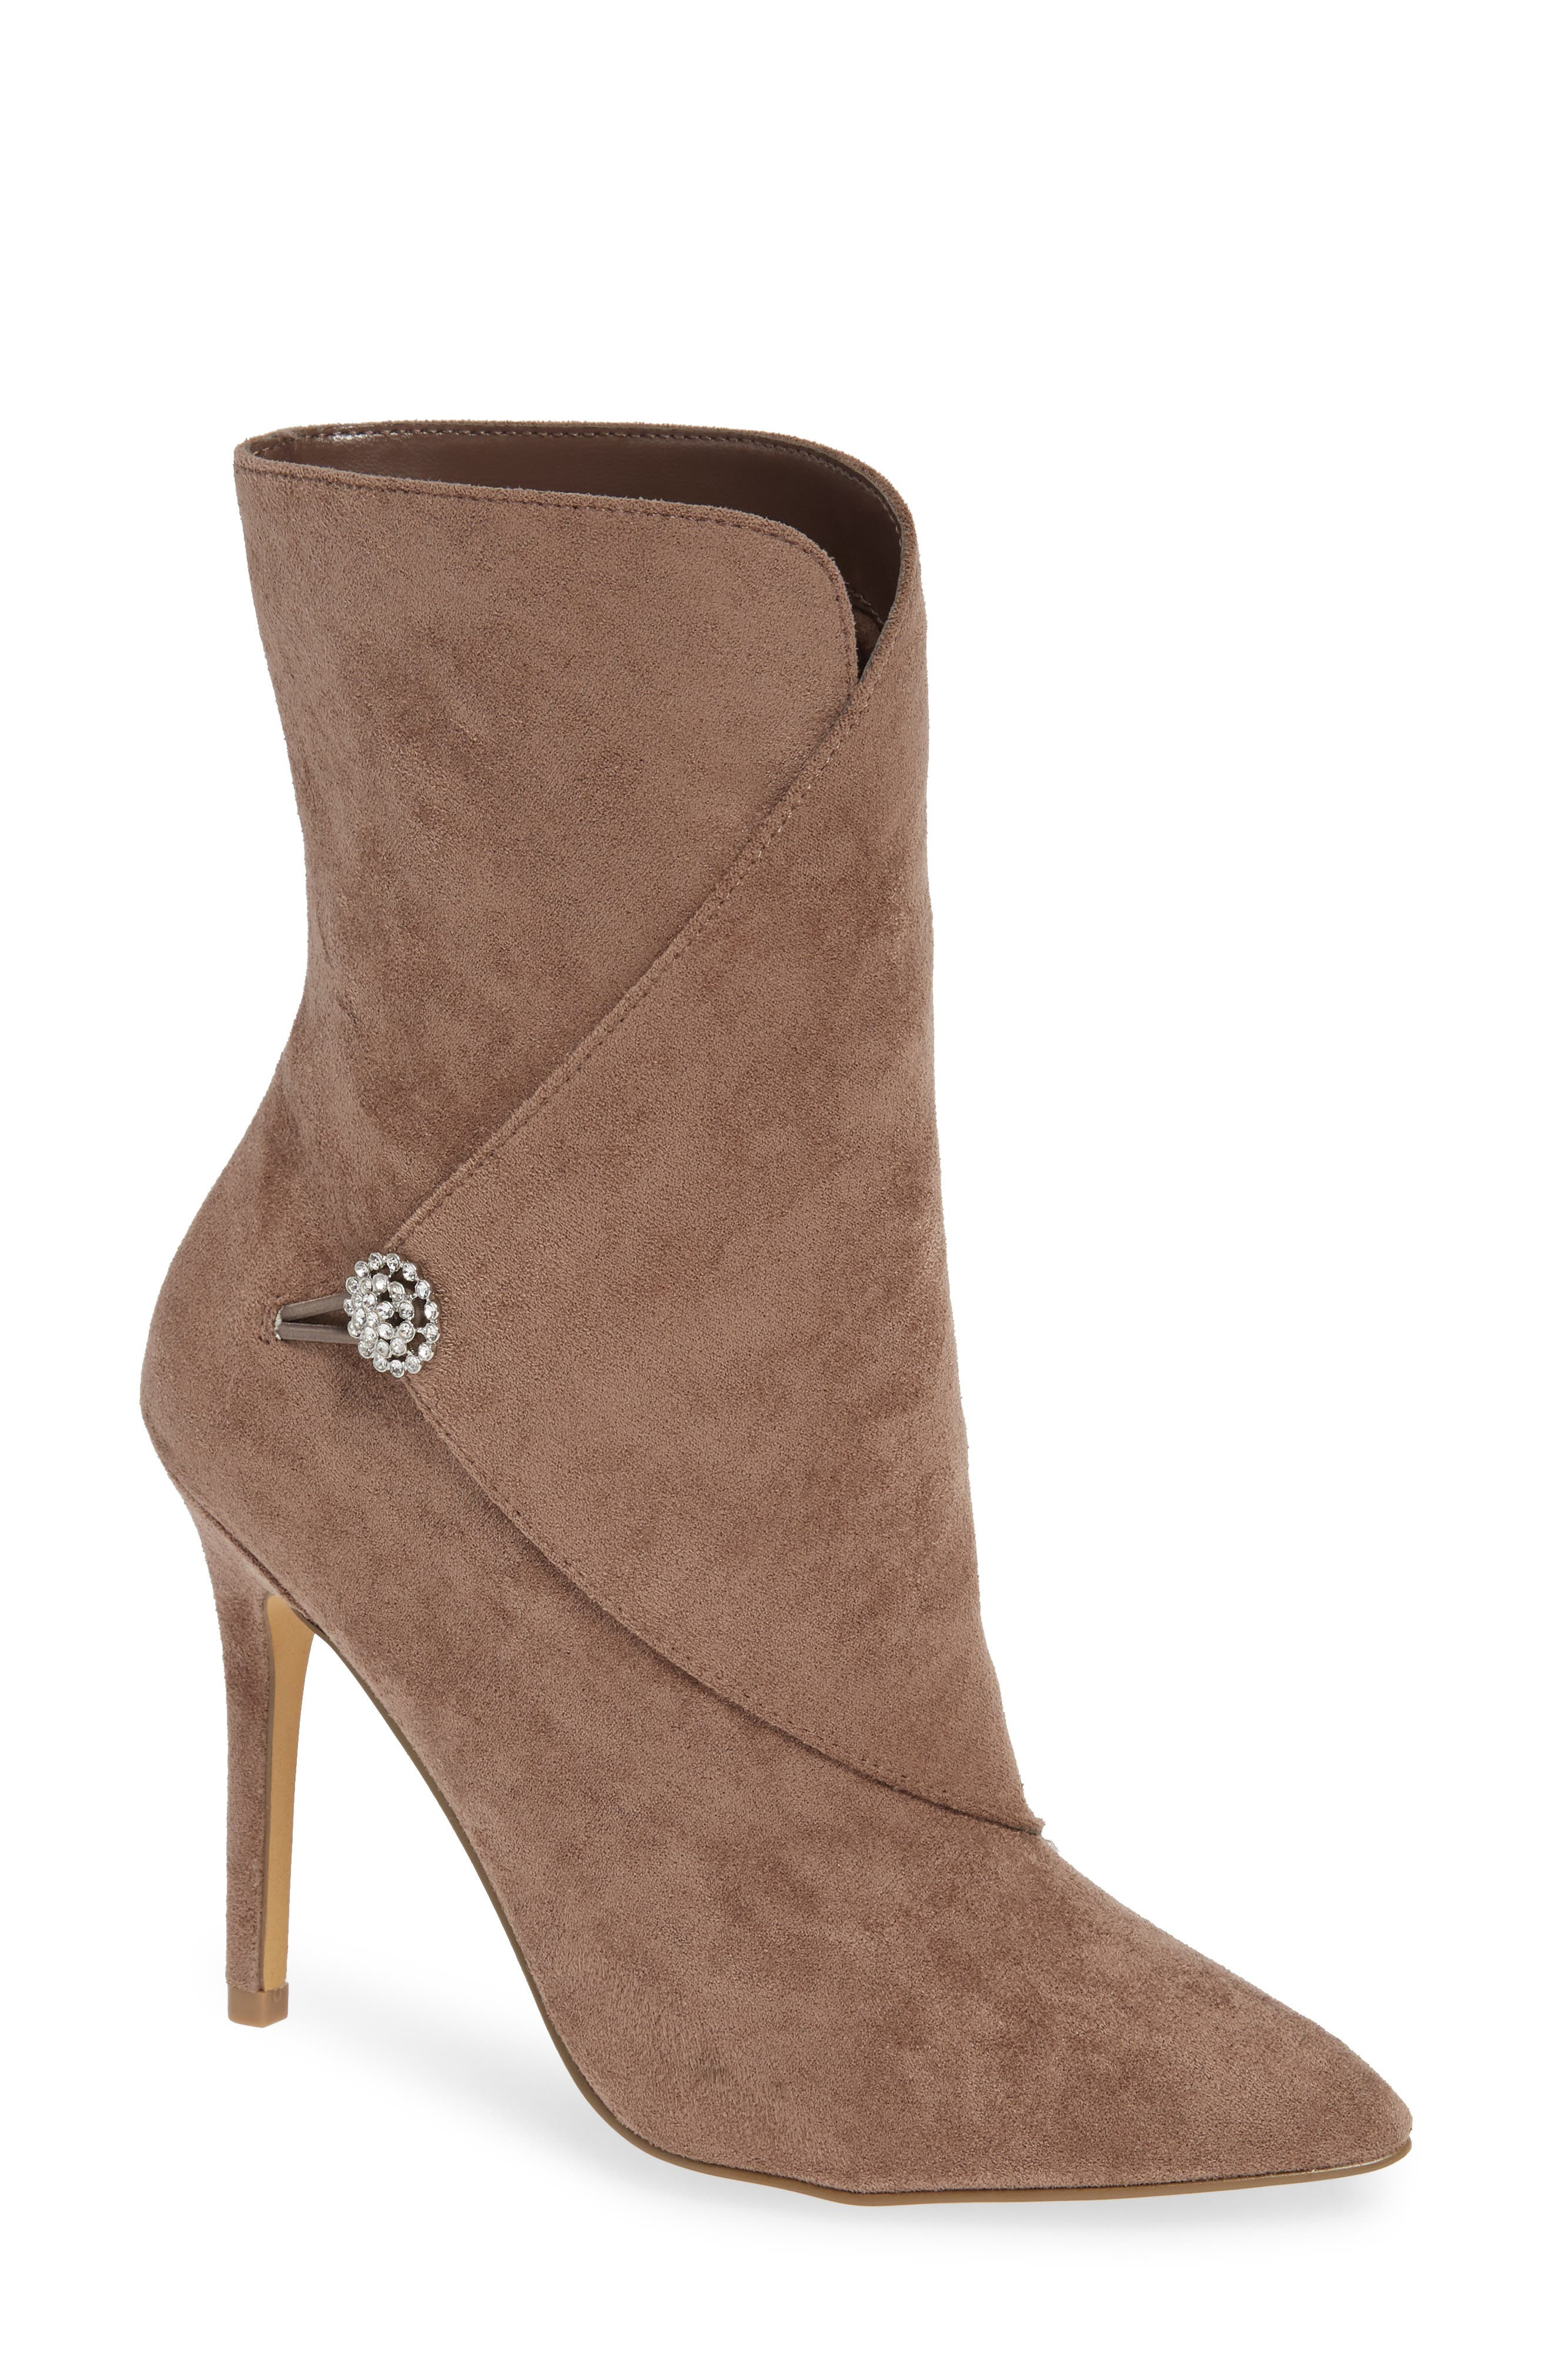 CHARLES BY CHARLES DAVID Pistol Crystal Embellished Pointy Toe Bootie, Main, color, TAUPE SUEDE